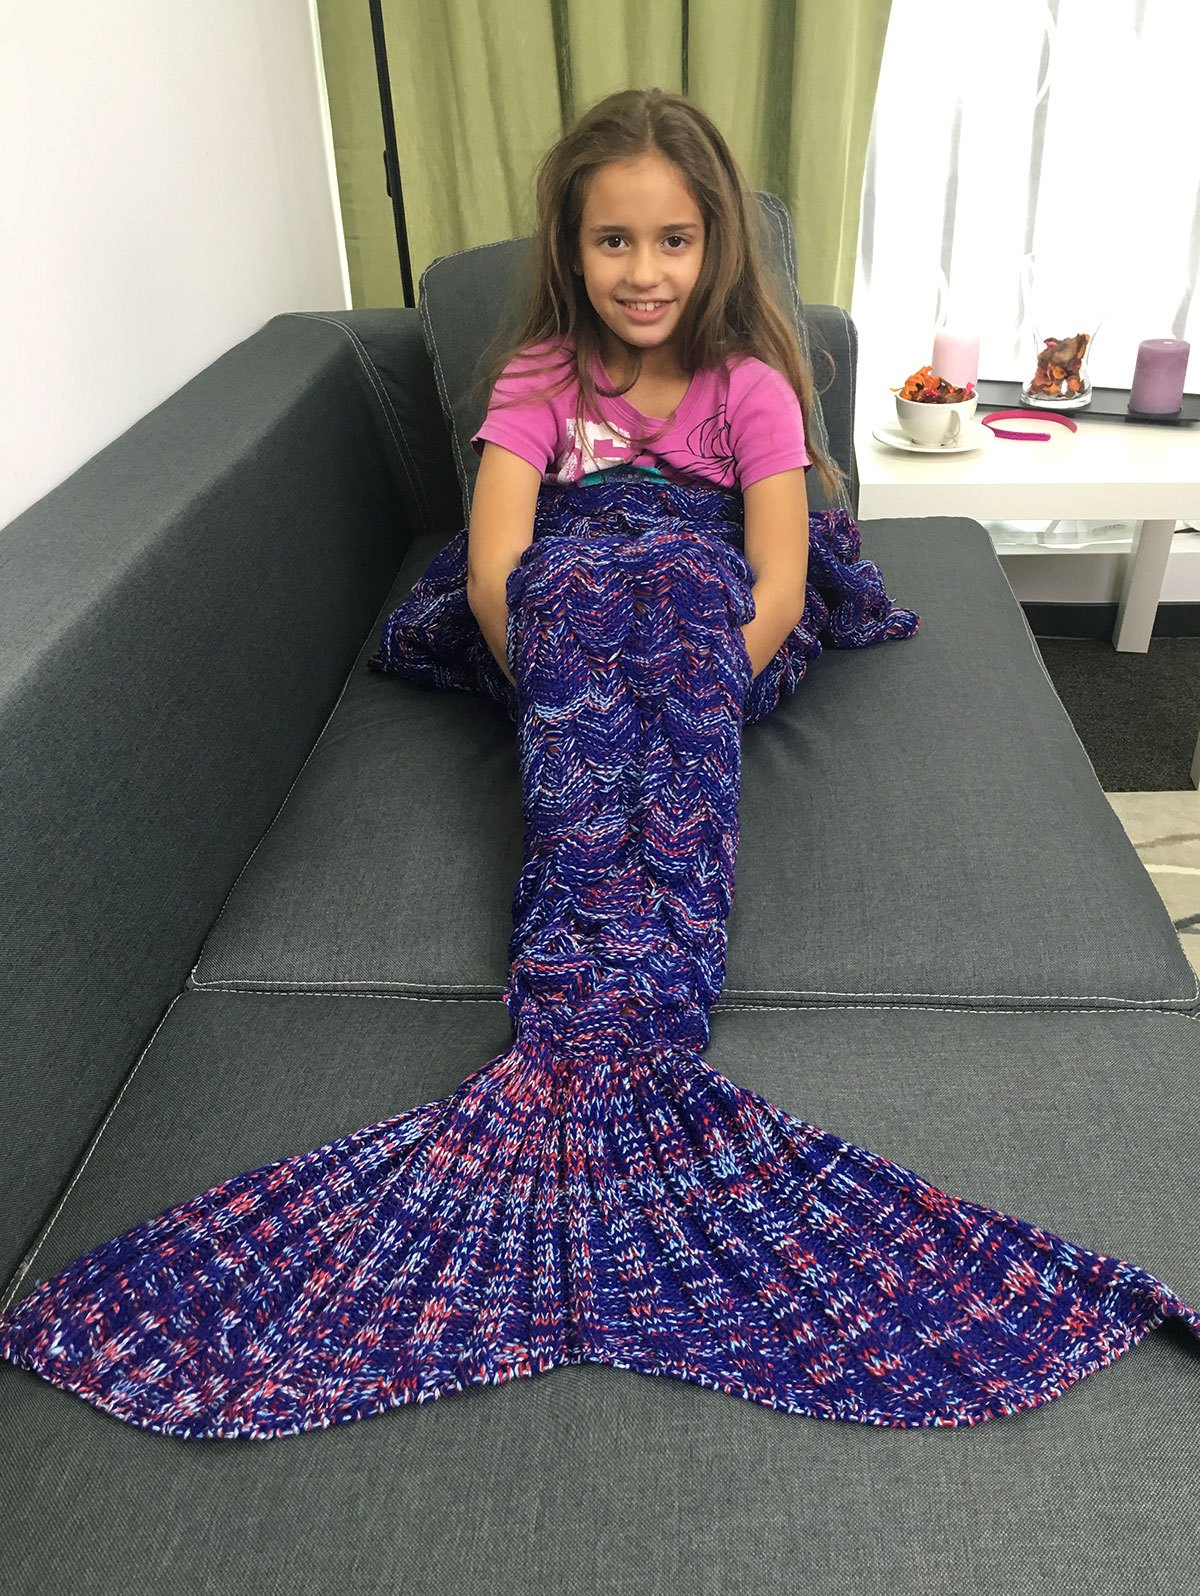 Fancy Super Soft Acrylic Knitted Mermaid Tail Style Blanket